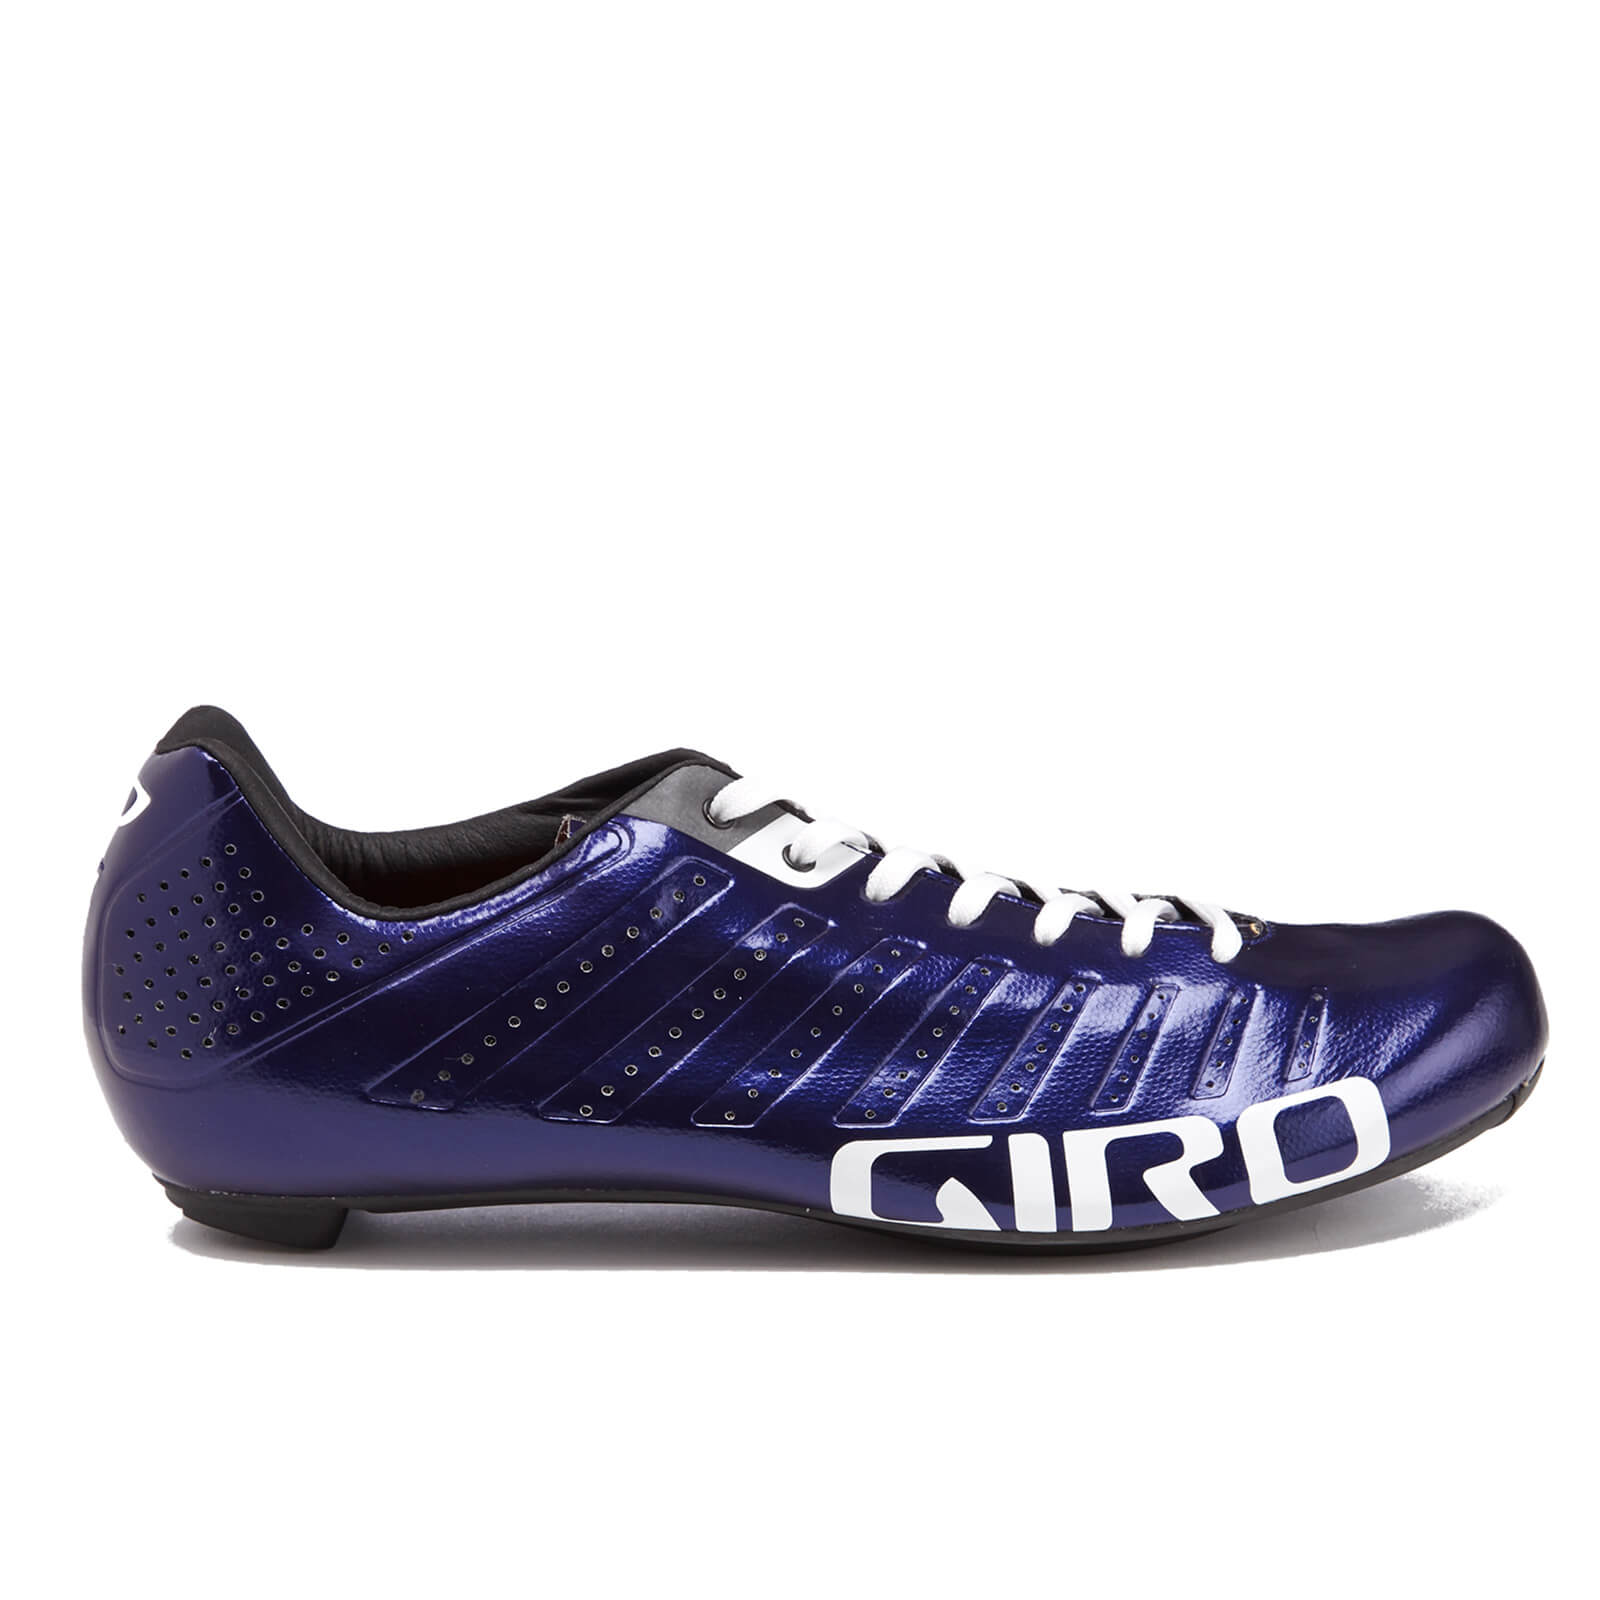 Giro Empire SLX Road Cycling Shoes - Purple/White